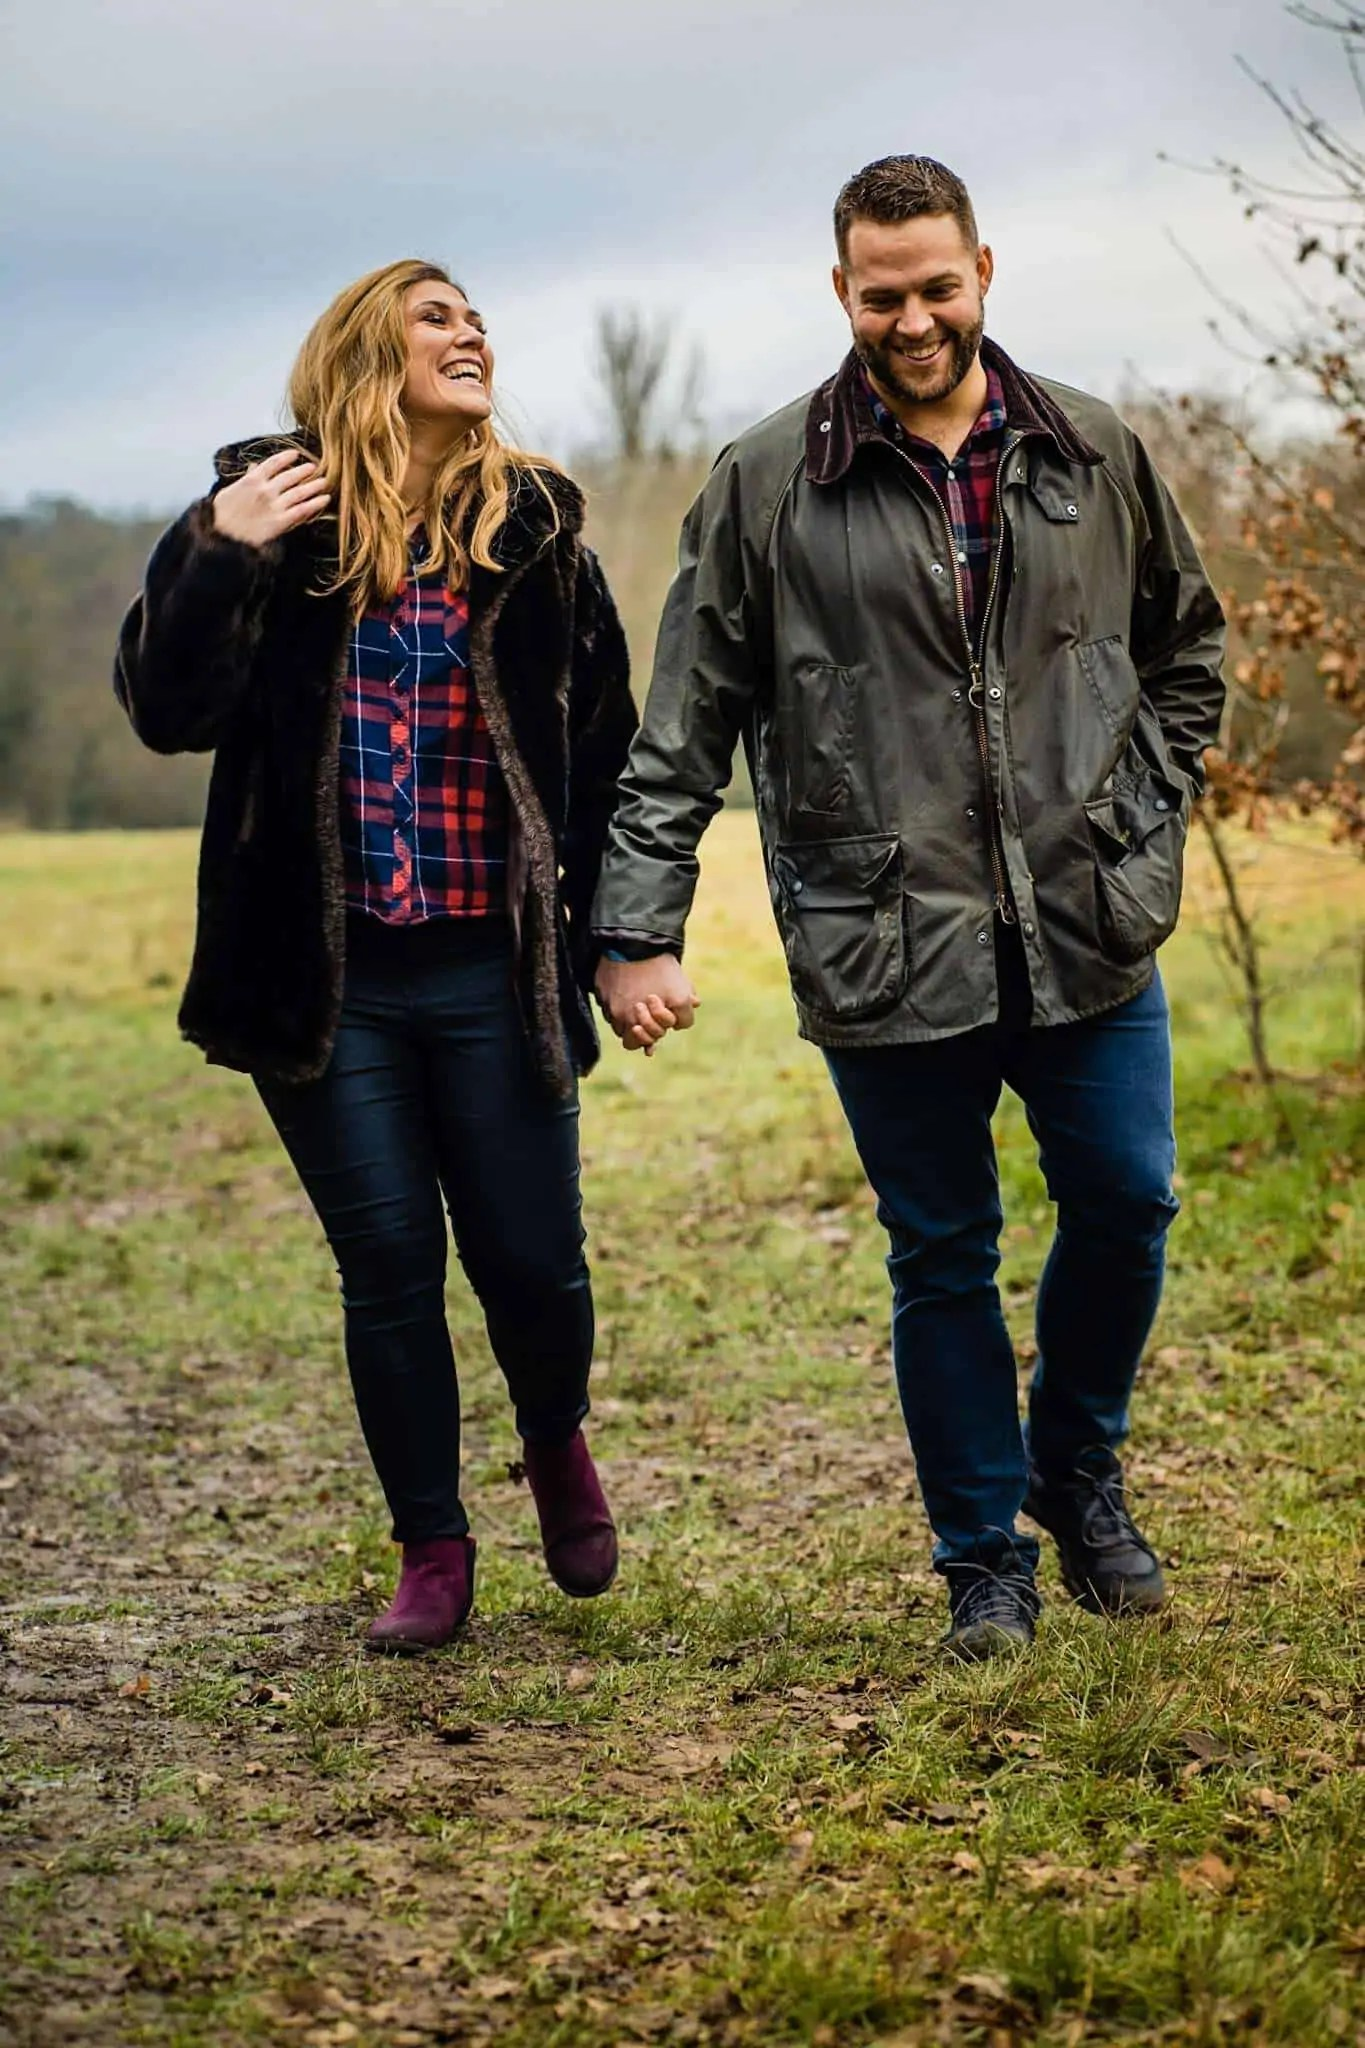 An engaged couple taking a stroll in a north London park